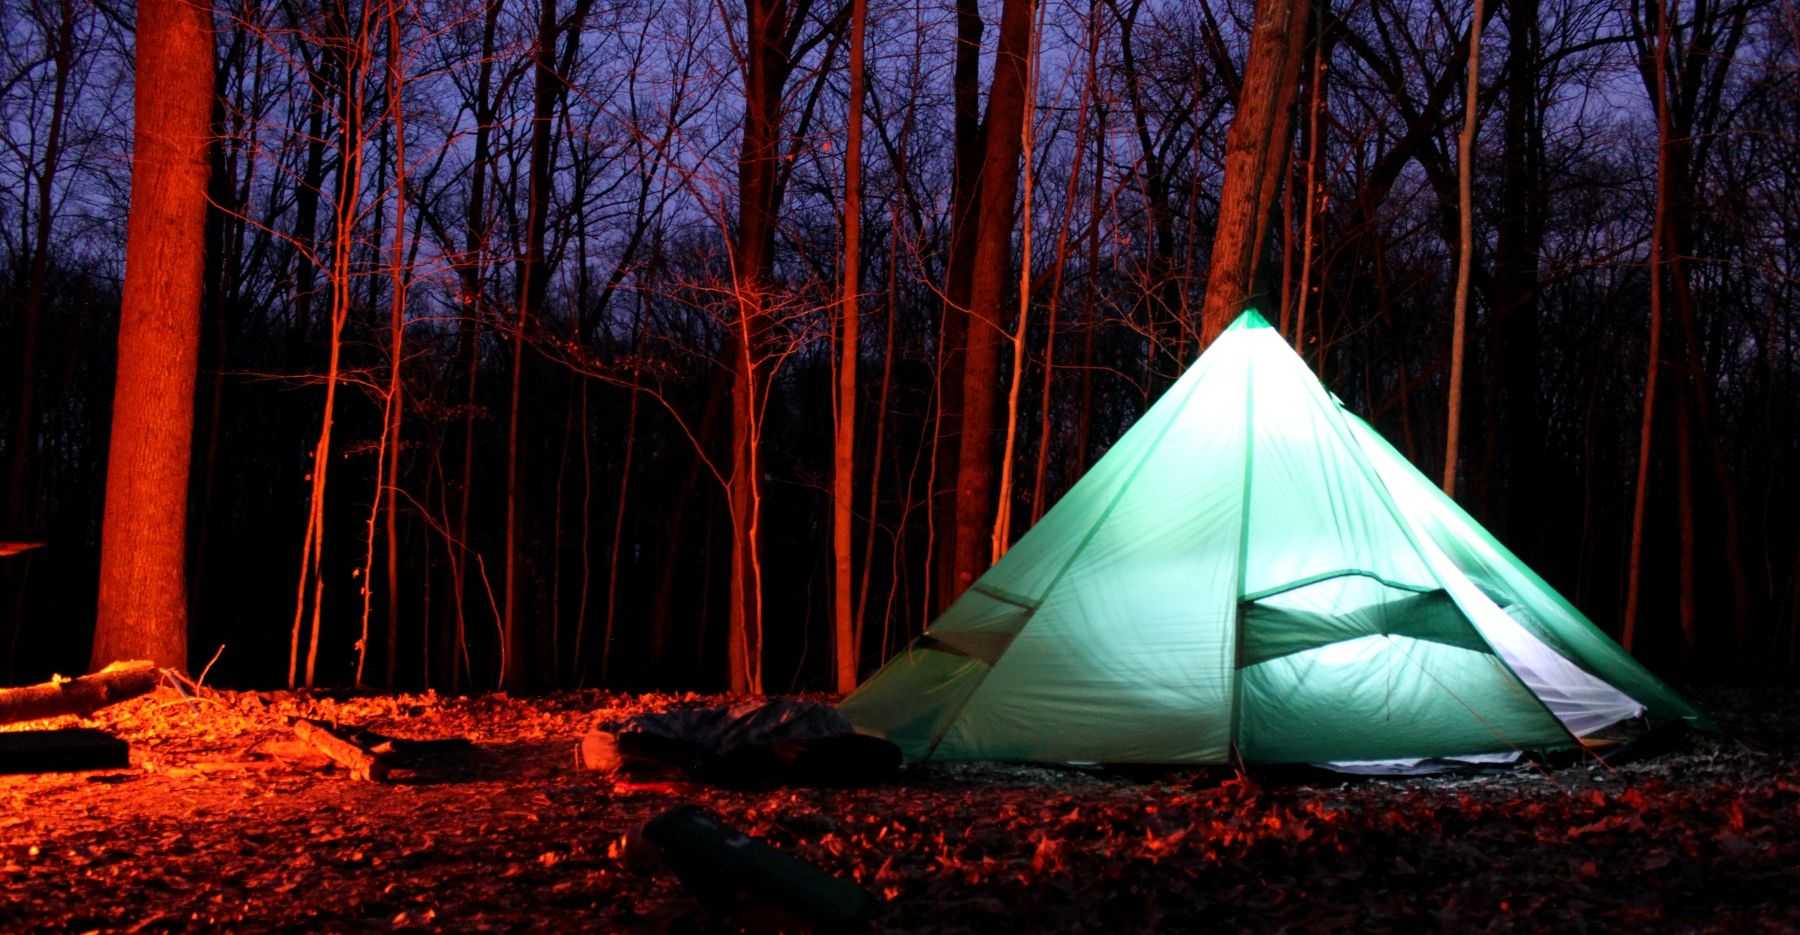 Indian Tipi at Night   Outdoor, Outdoor camping, Teepee tent